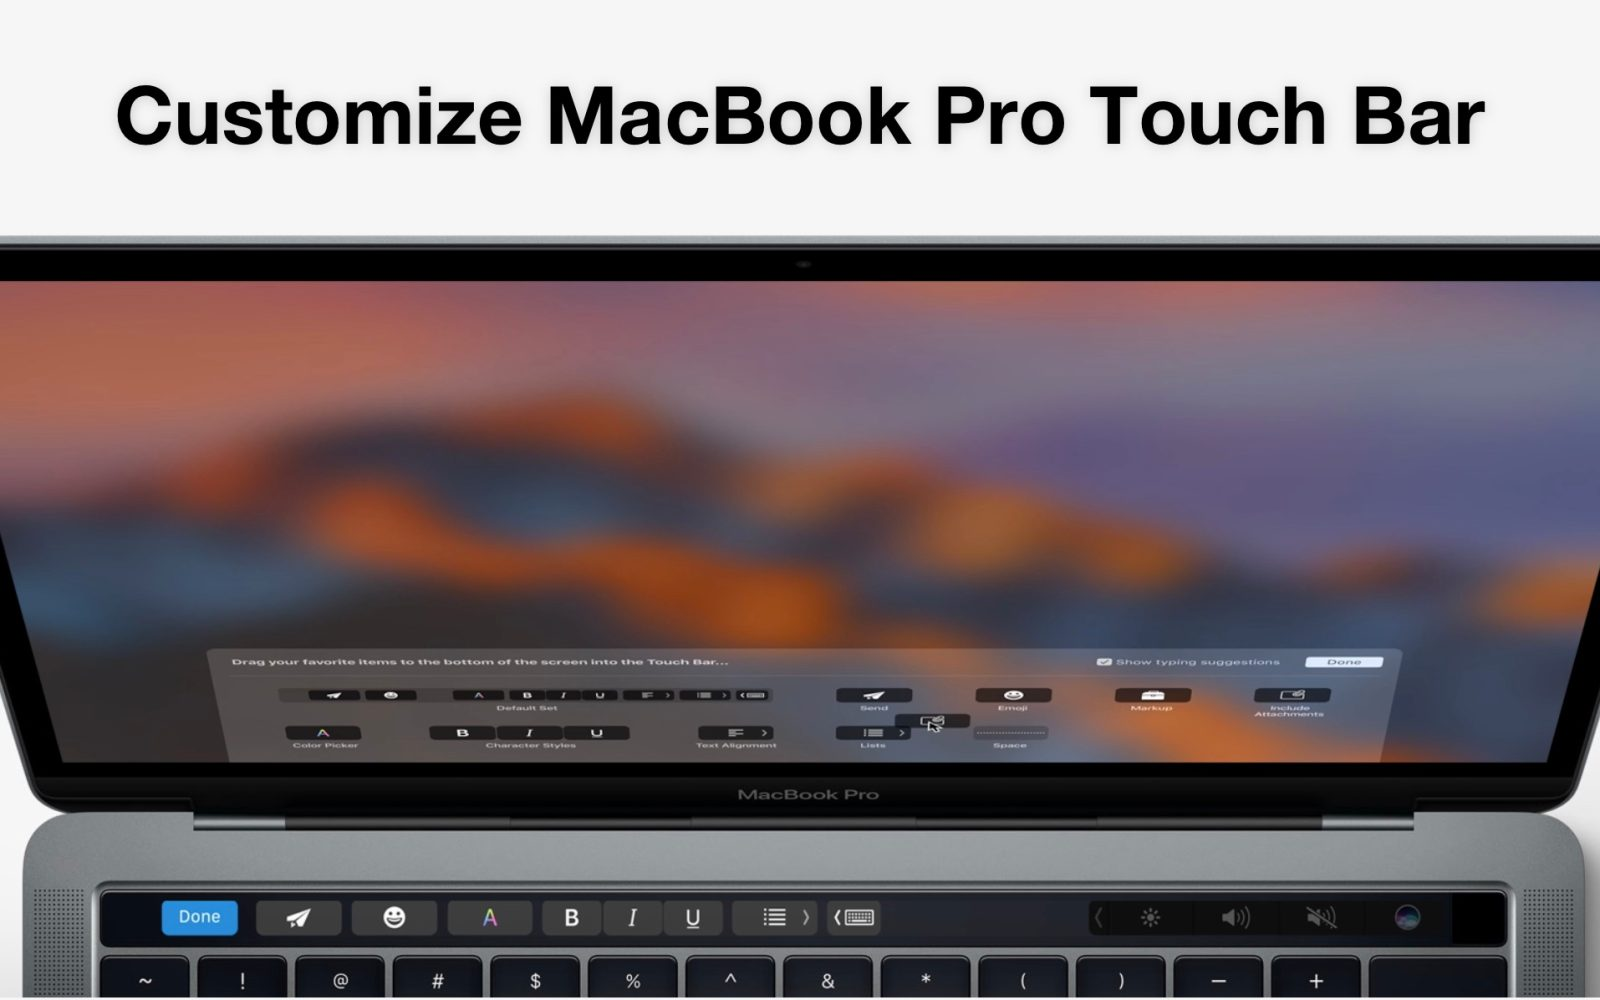 How to customize the MacBook Pro Touch Bar, add shortcuts, hide